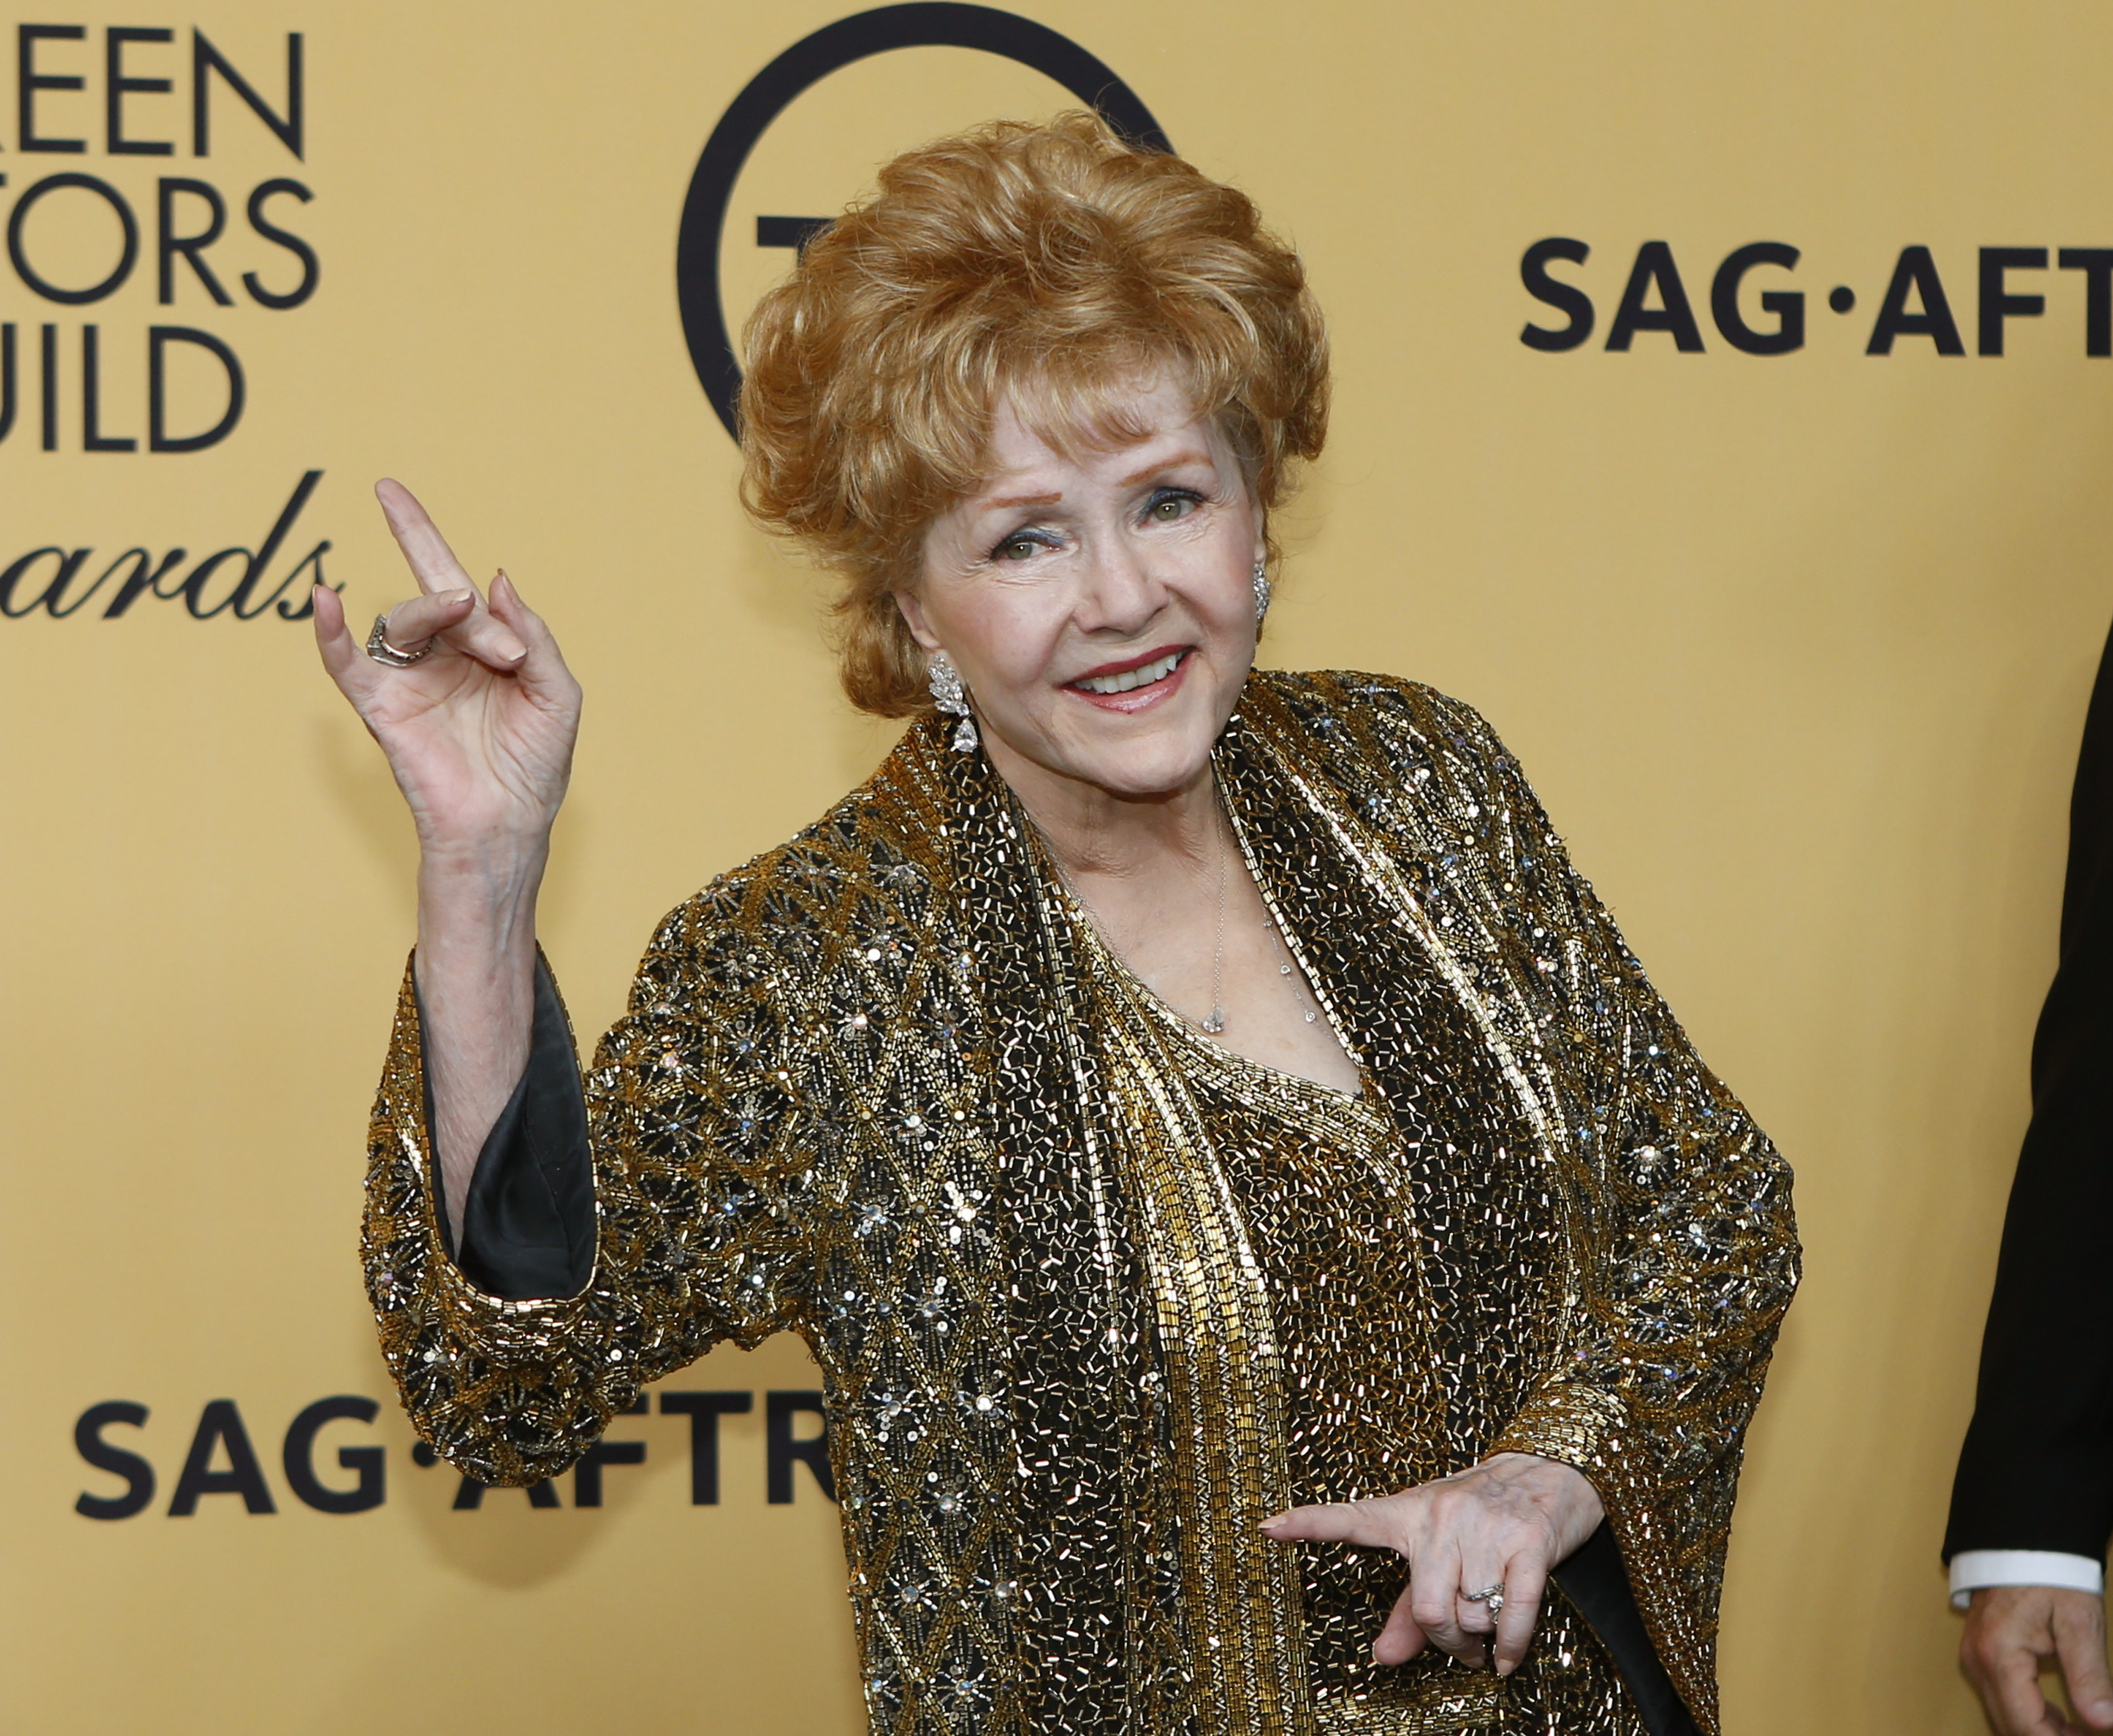 Actress Debbie Reynolds poses backstage after accepting her Lifetime Achievement awards at the 21st annual Screen Actors Guild Awards in Los Angeles